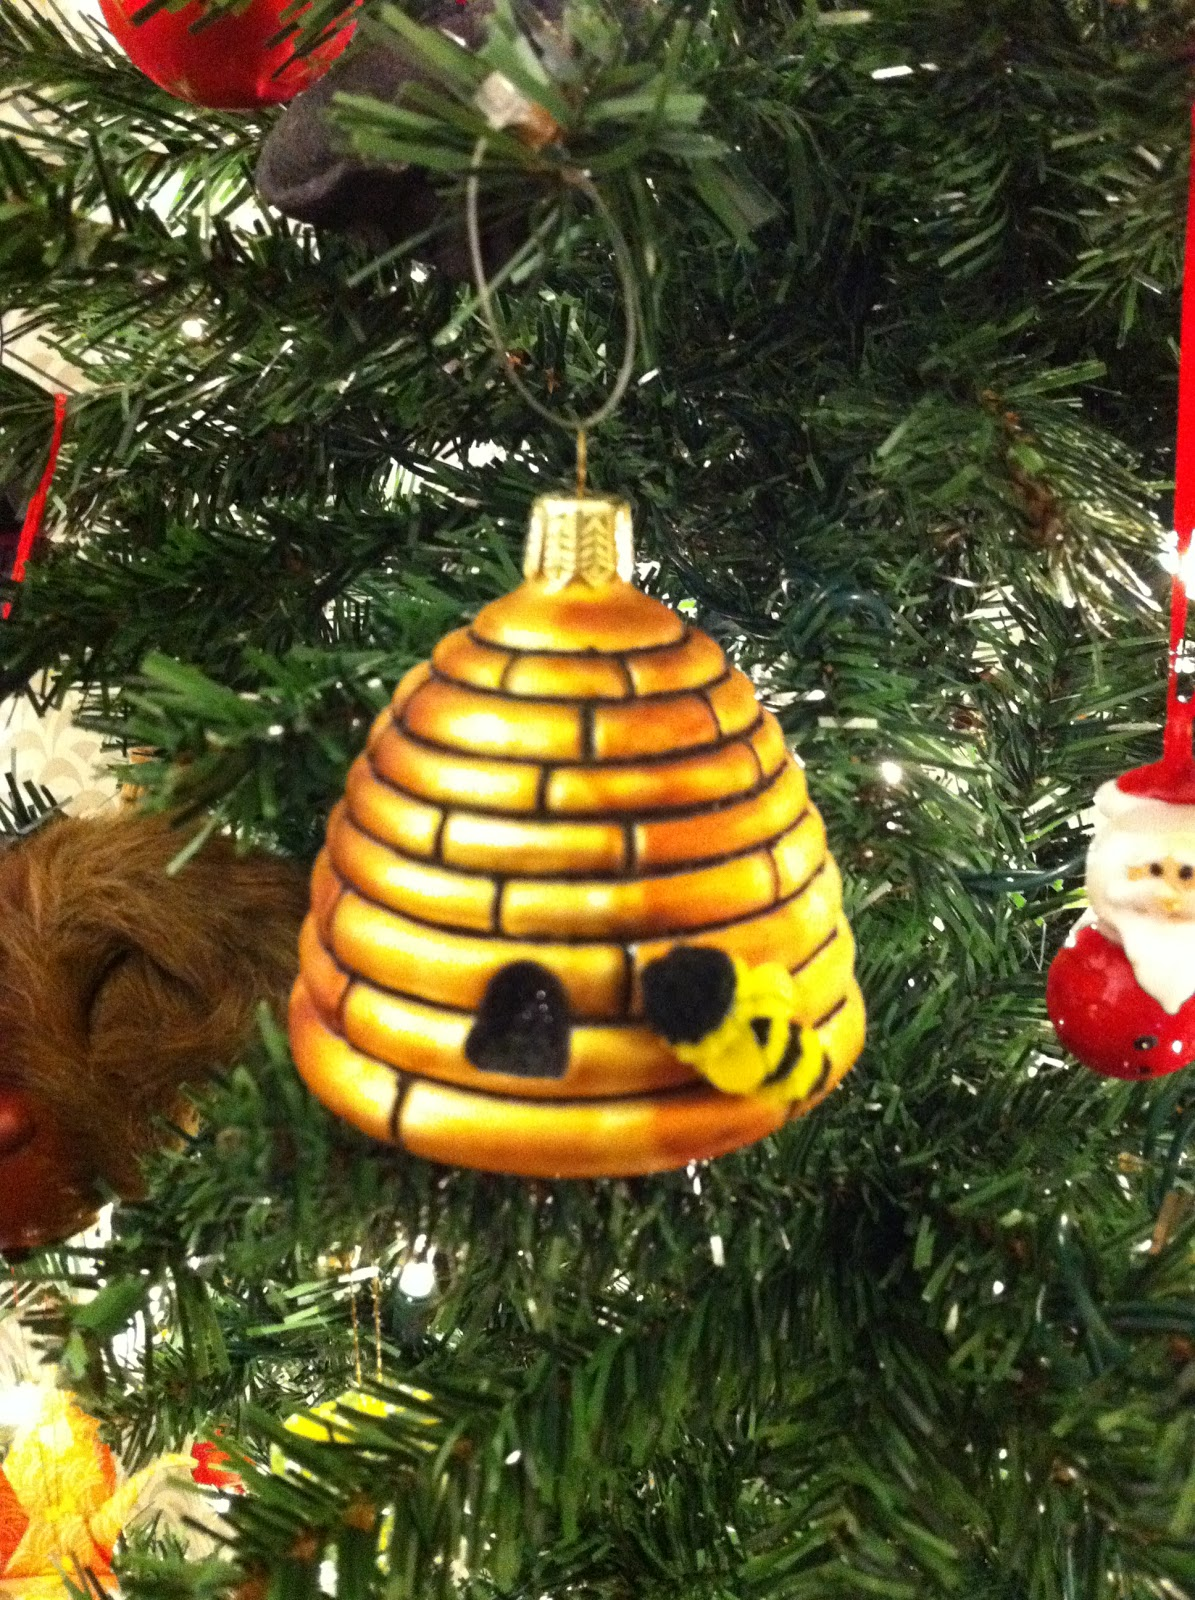 Beehive ornament - The Hand Carved Lobsterman A Souvenir From Our Honeymoon In Maine And Who Just Happens To Be The Most Expensive Ornament We Own